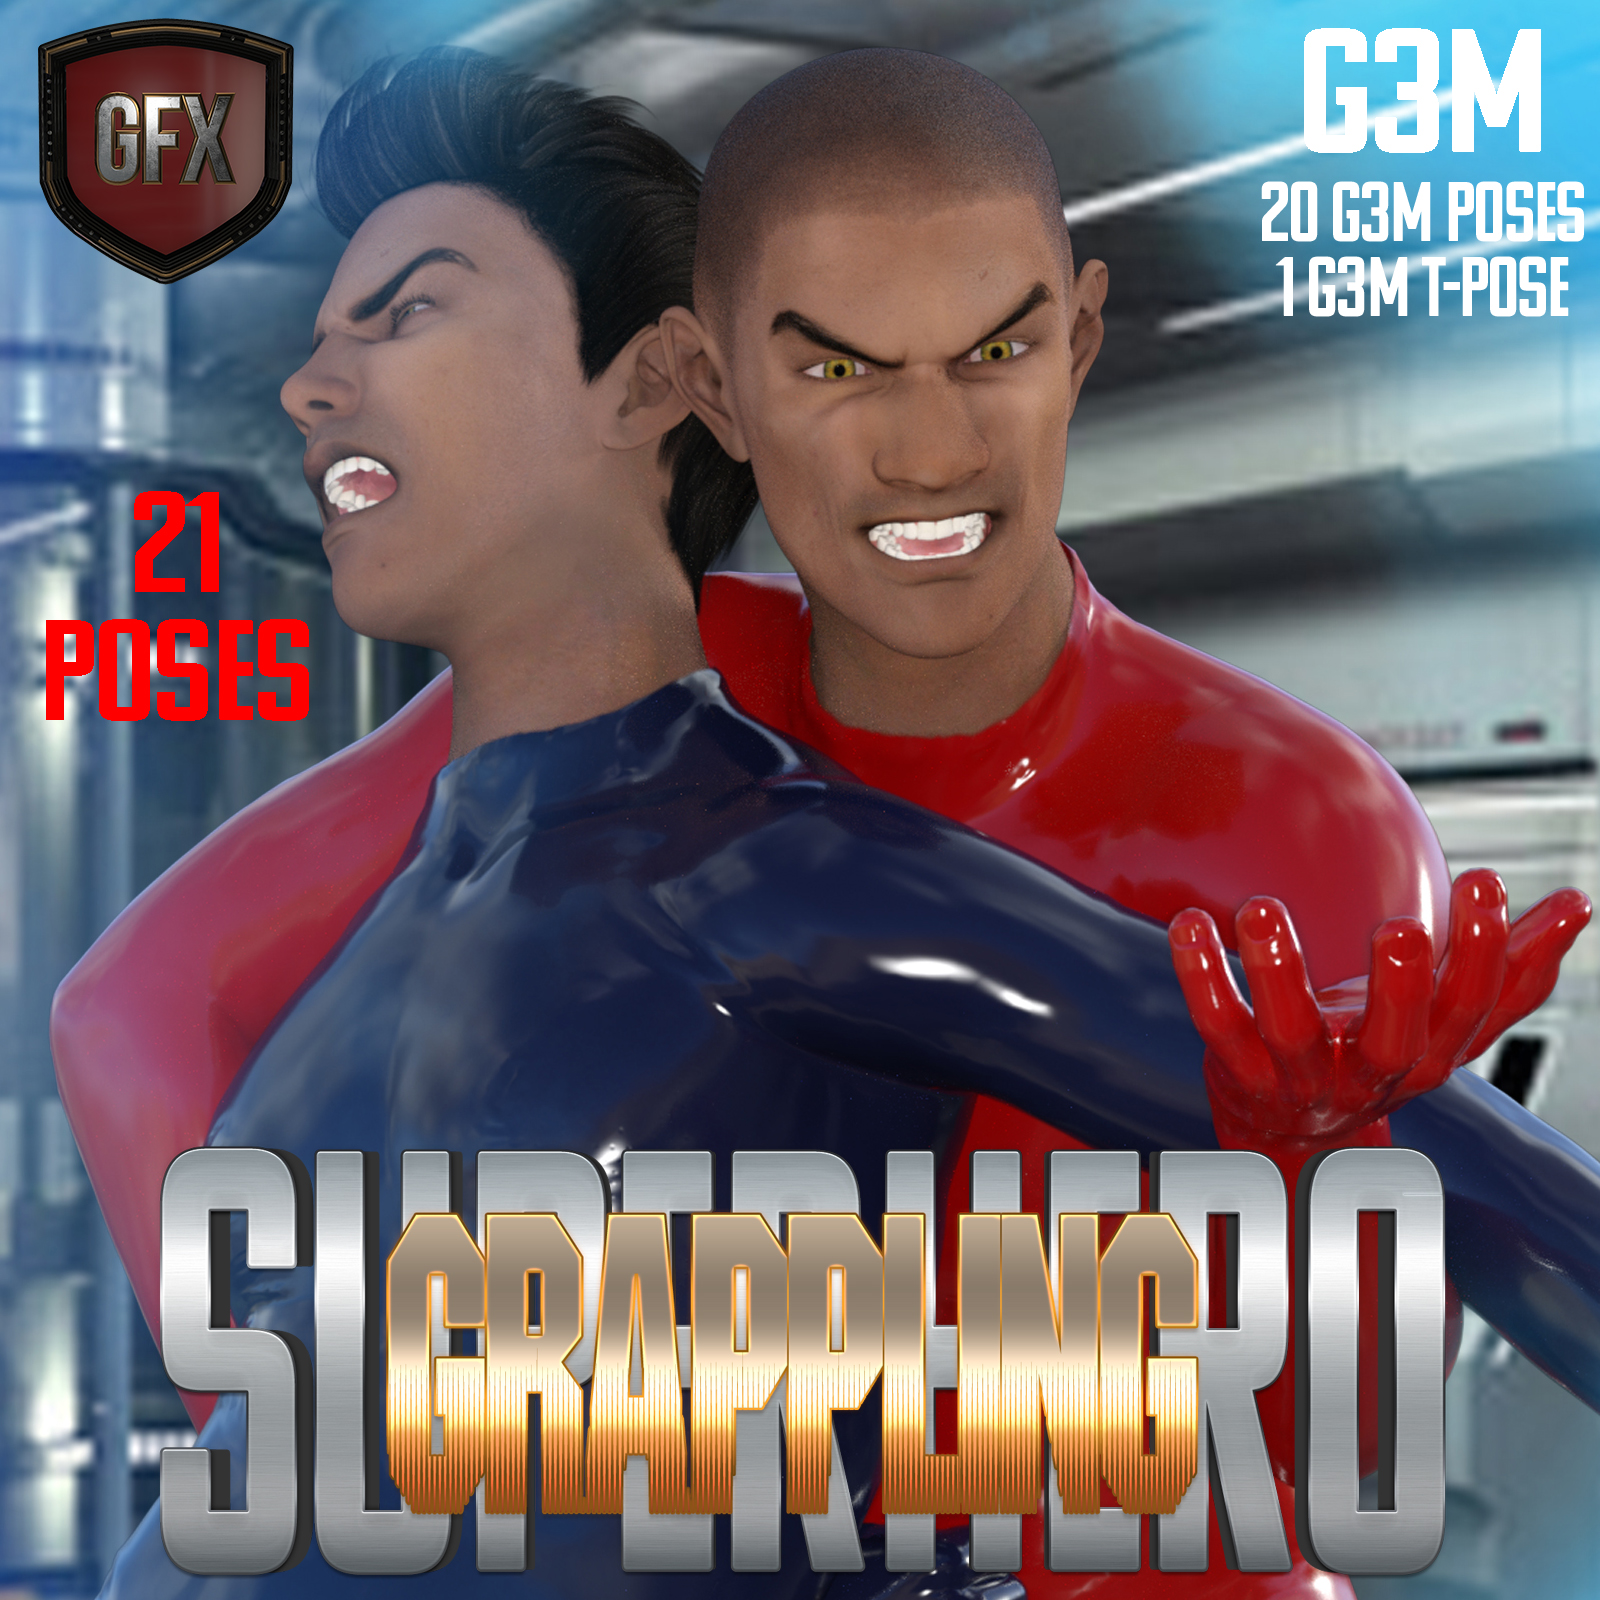 SuperHero Grappling for G3M Volume 1 by GriffinFX